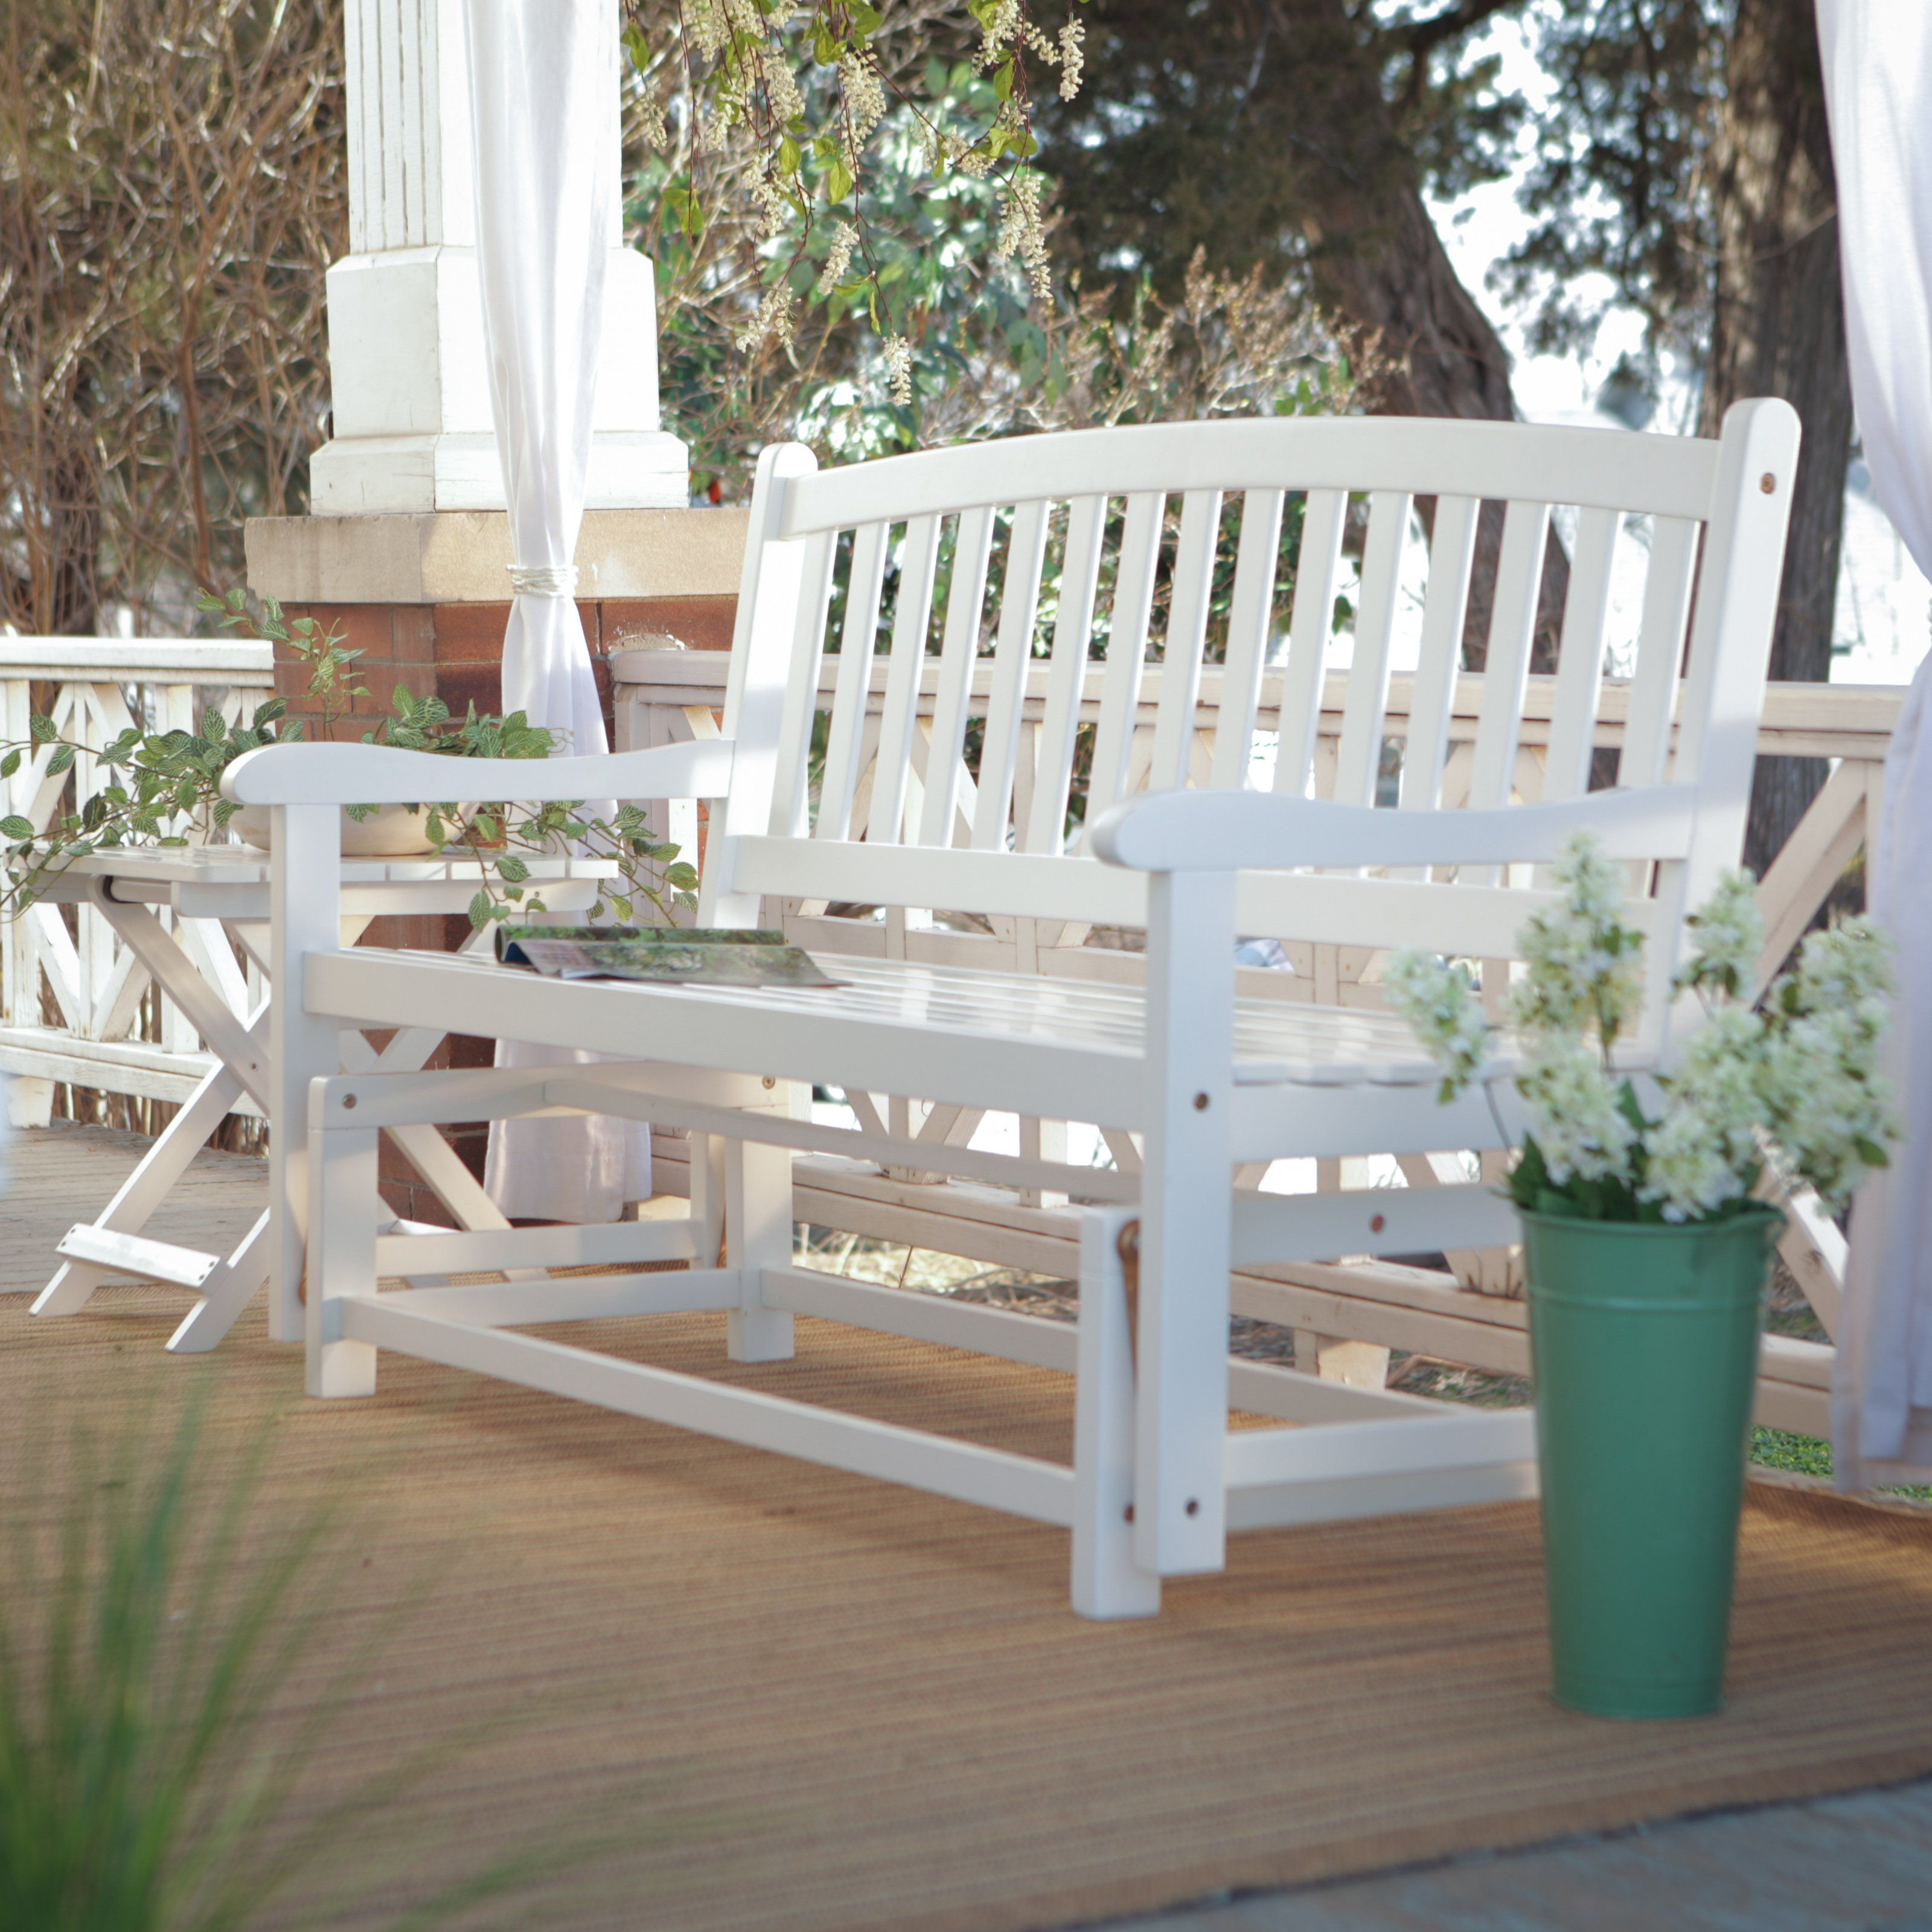 patio inspirations wood of stunning size deck full porch covers bench chair swing outdoor stunningg glider shop image replacement